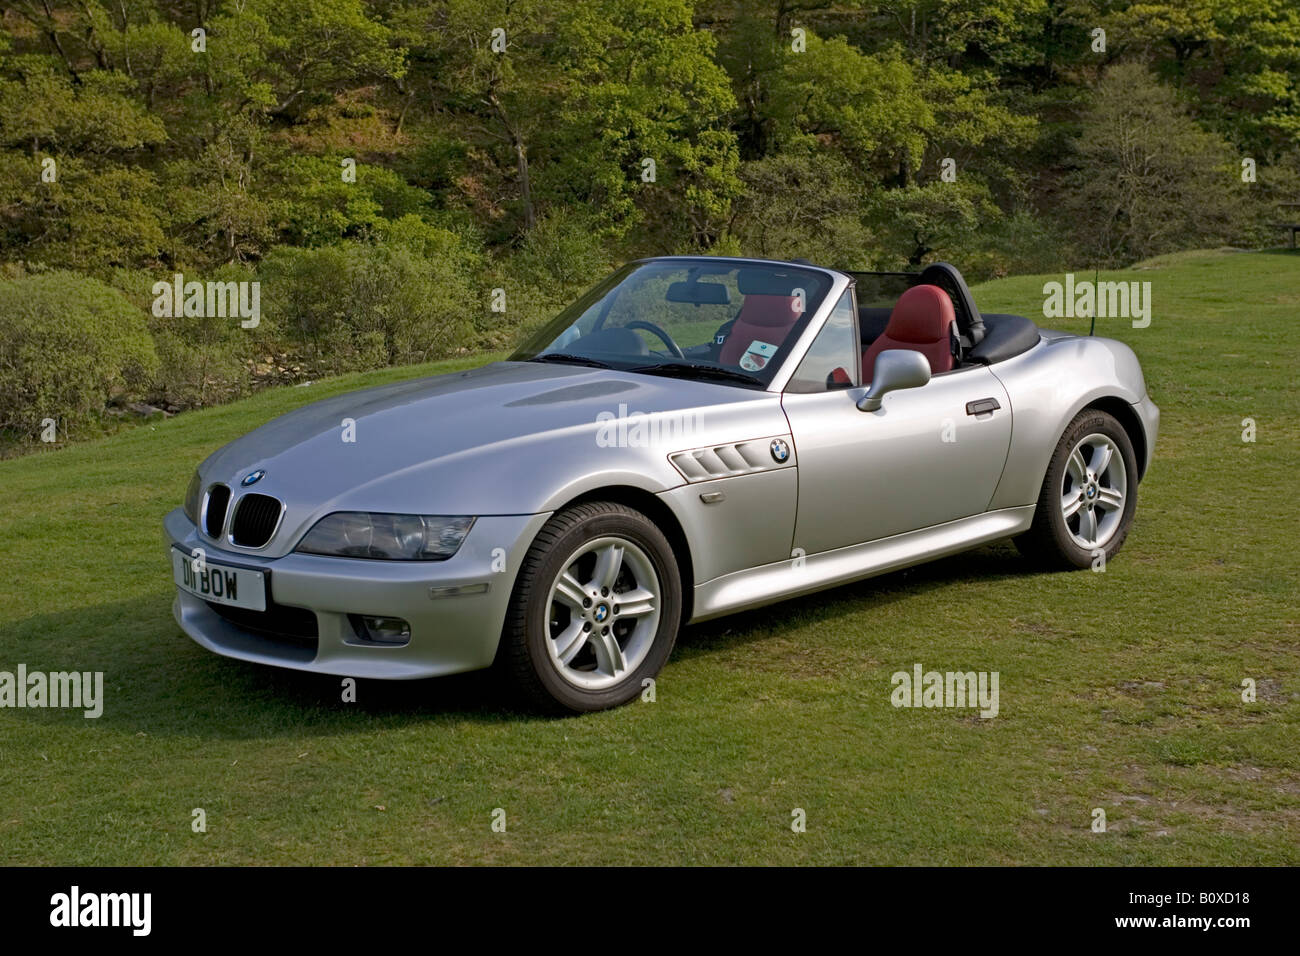 Bmw 2 Seater Convertible Sports Car